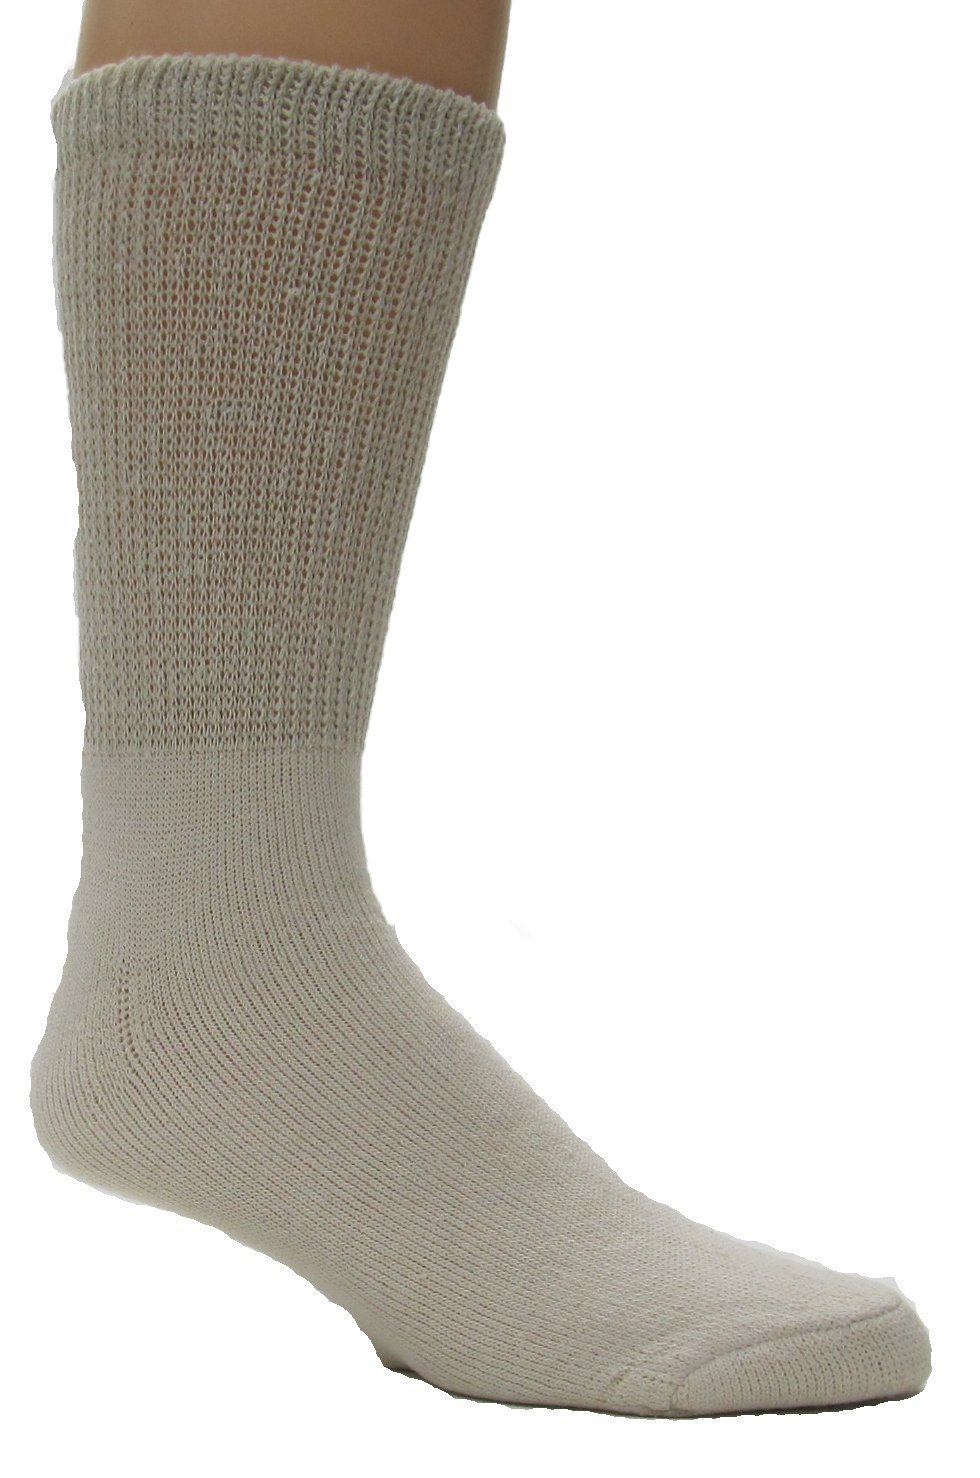 Diabetic Socks, Ultra Light, 12pair, Color Natural - Size 10-13